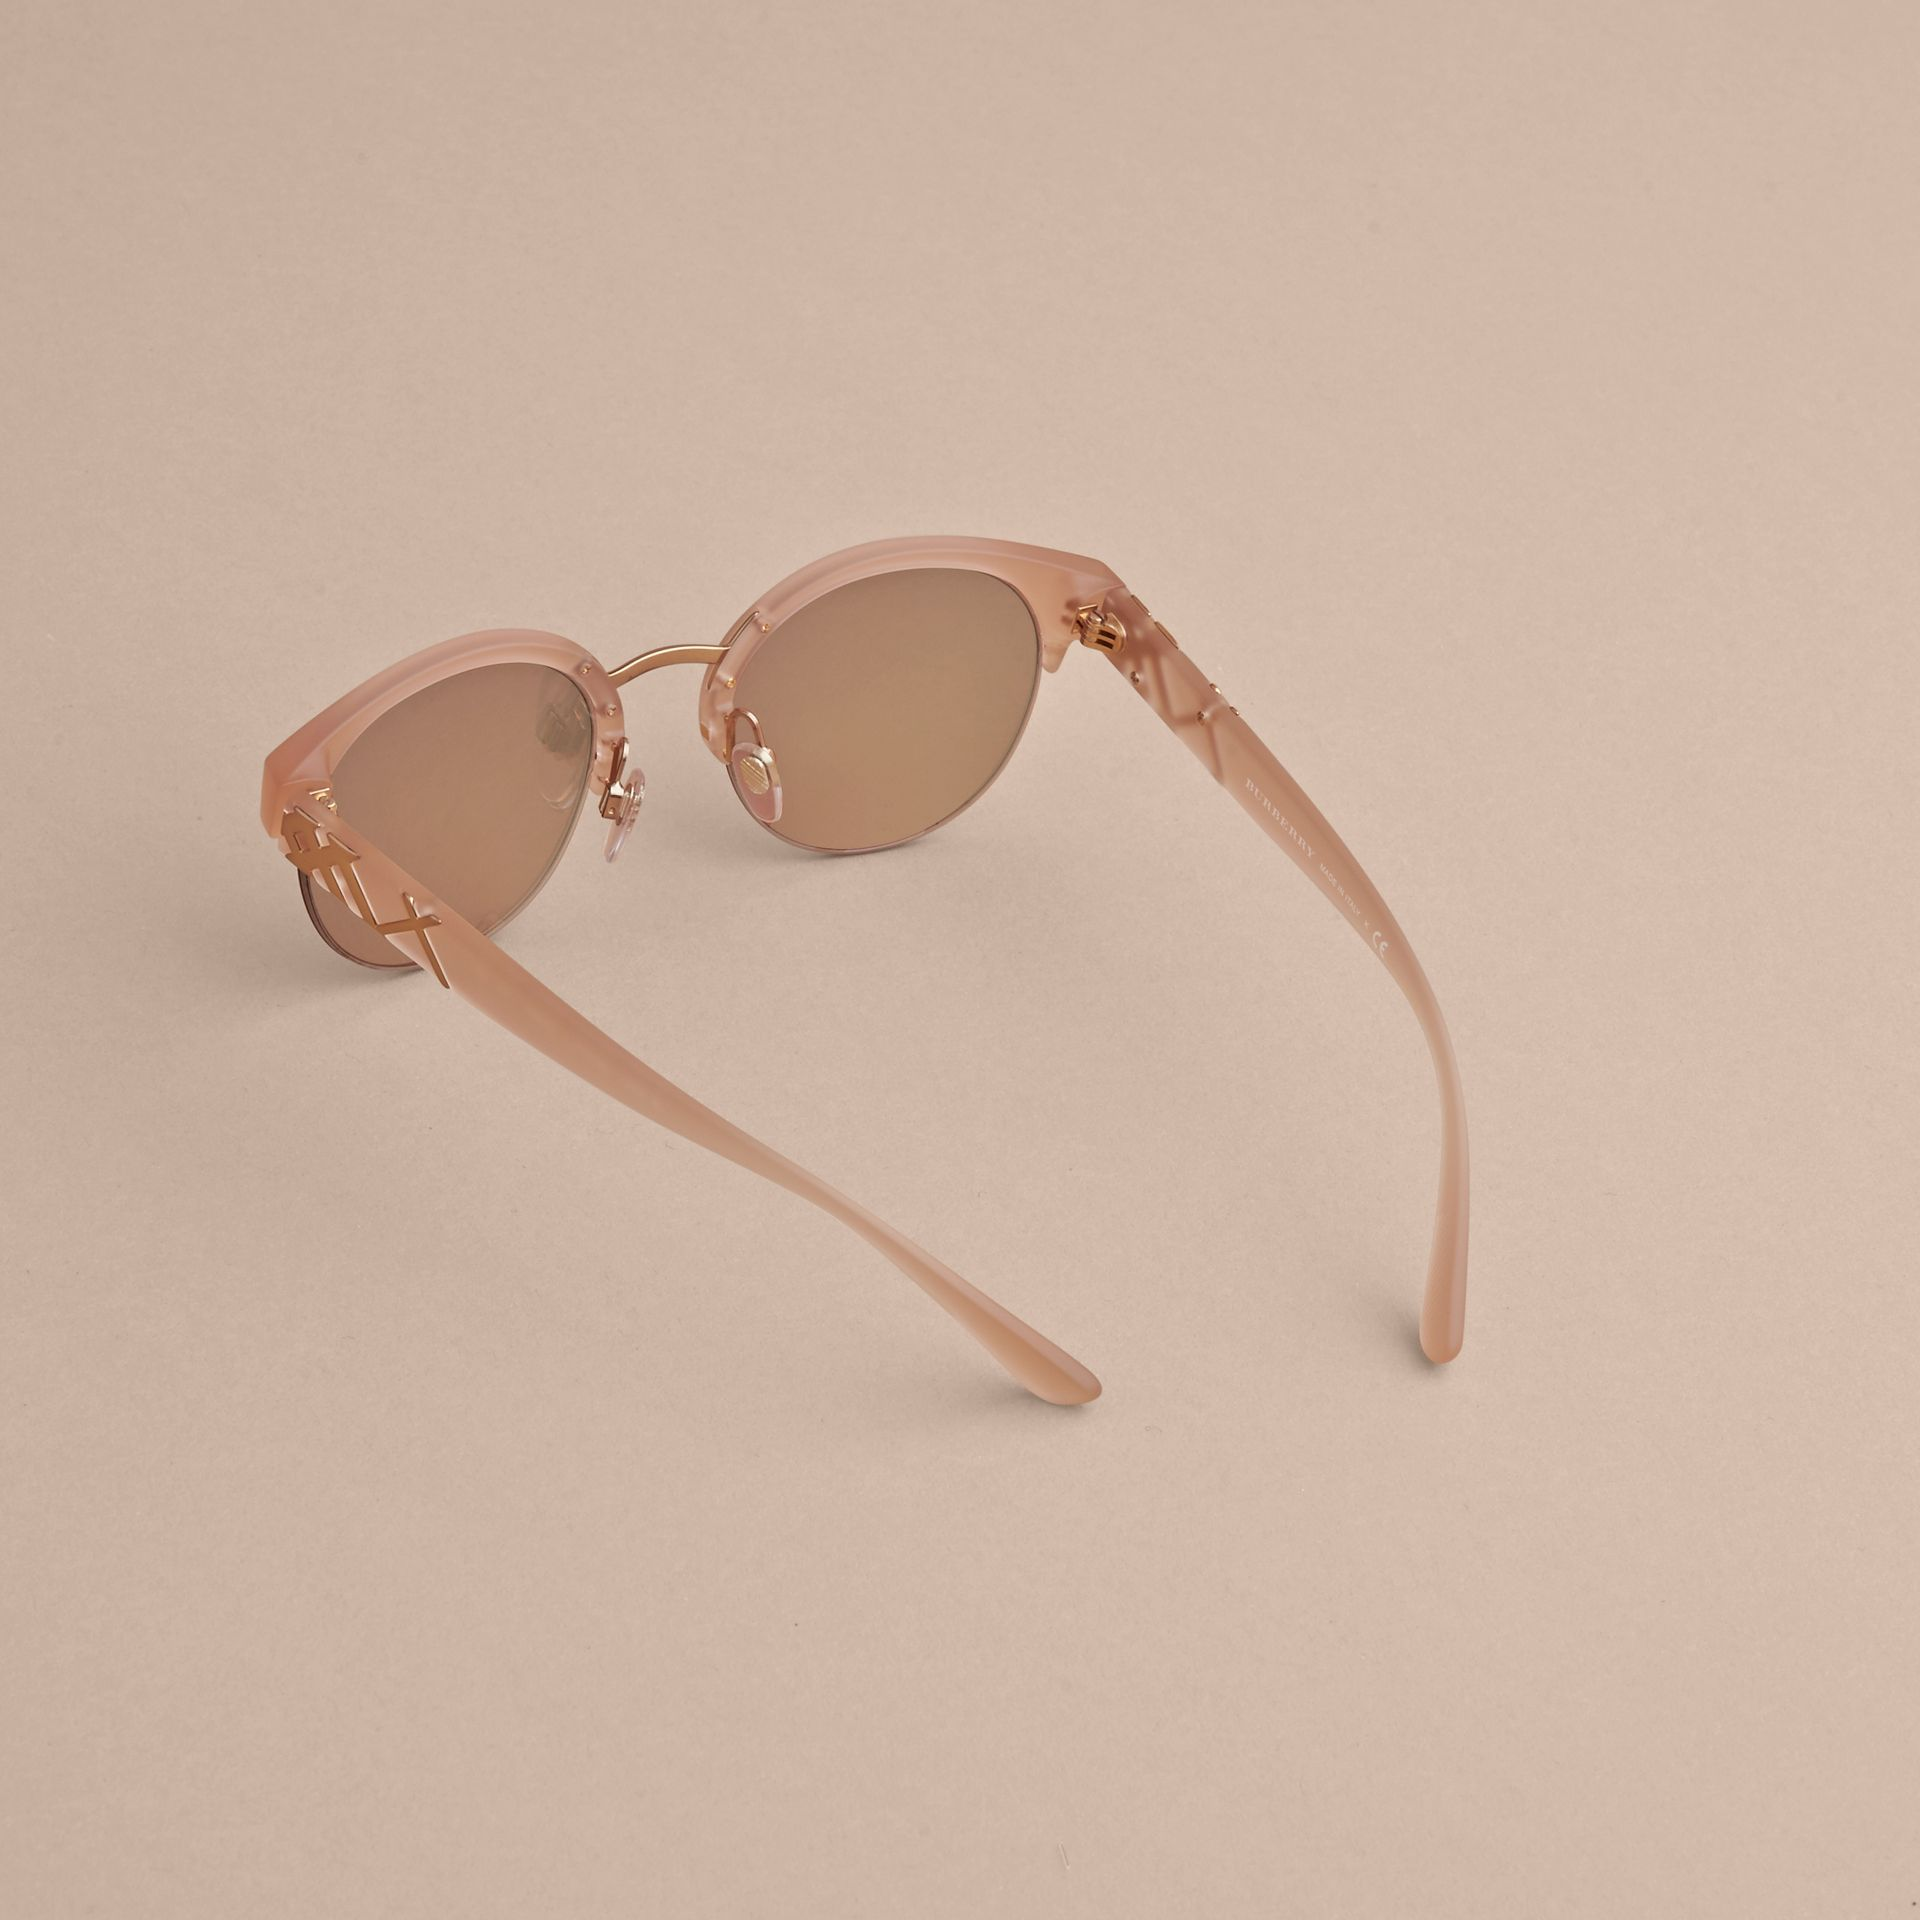 Check Detail Round Half-frame Sunglasses in Nude - Women | Burberry Canada - gallery image 4